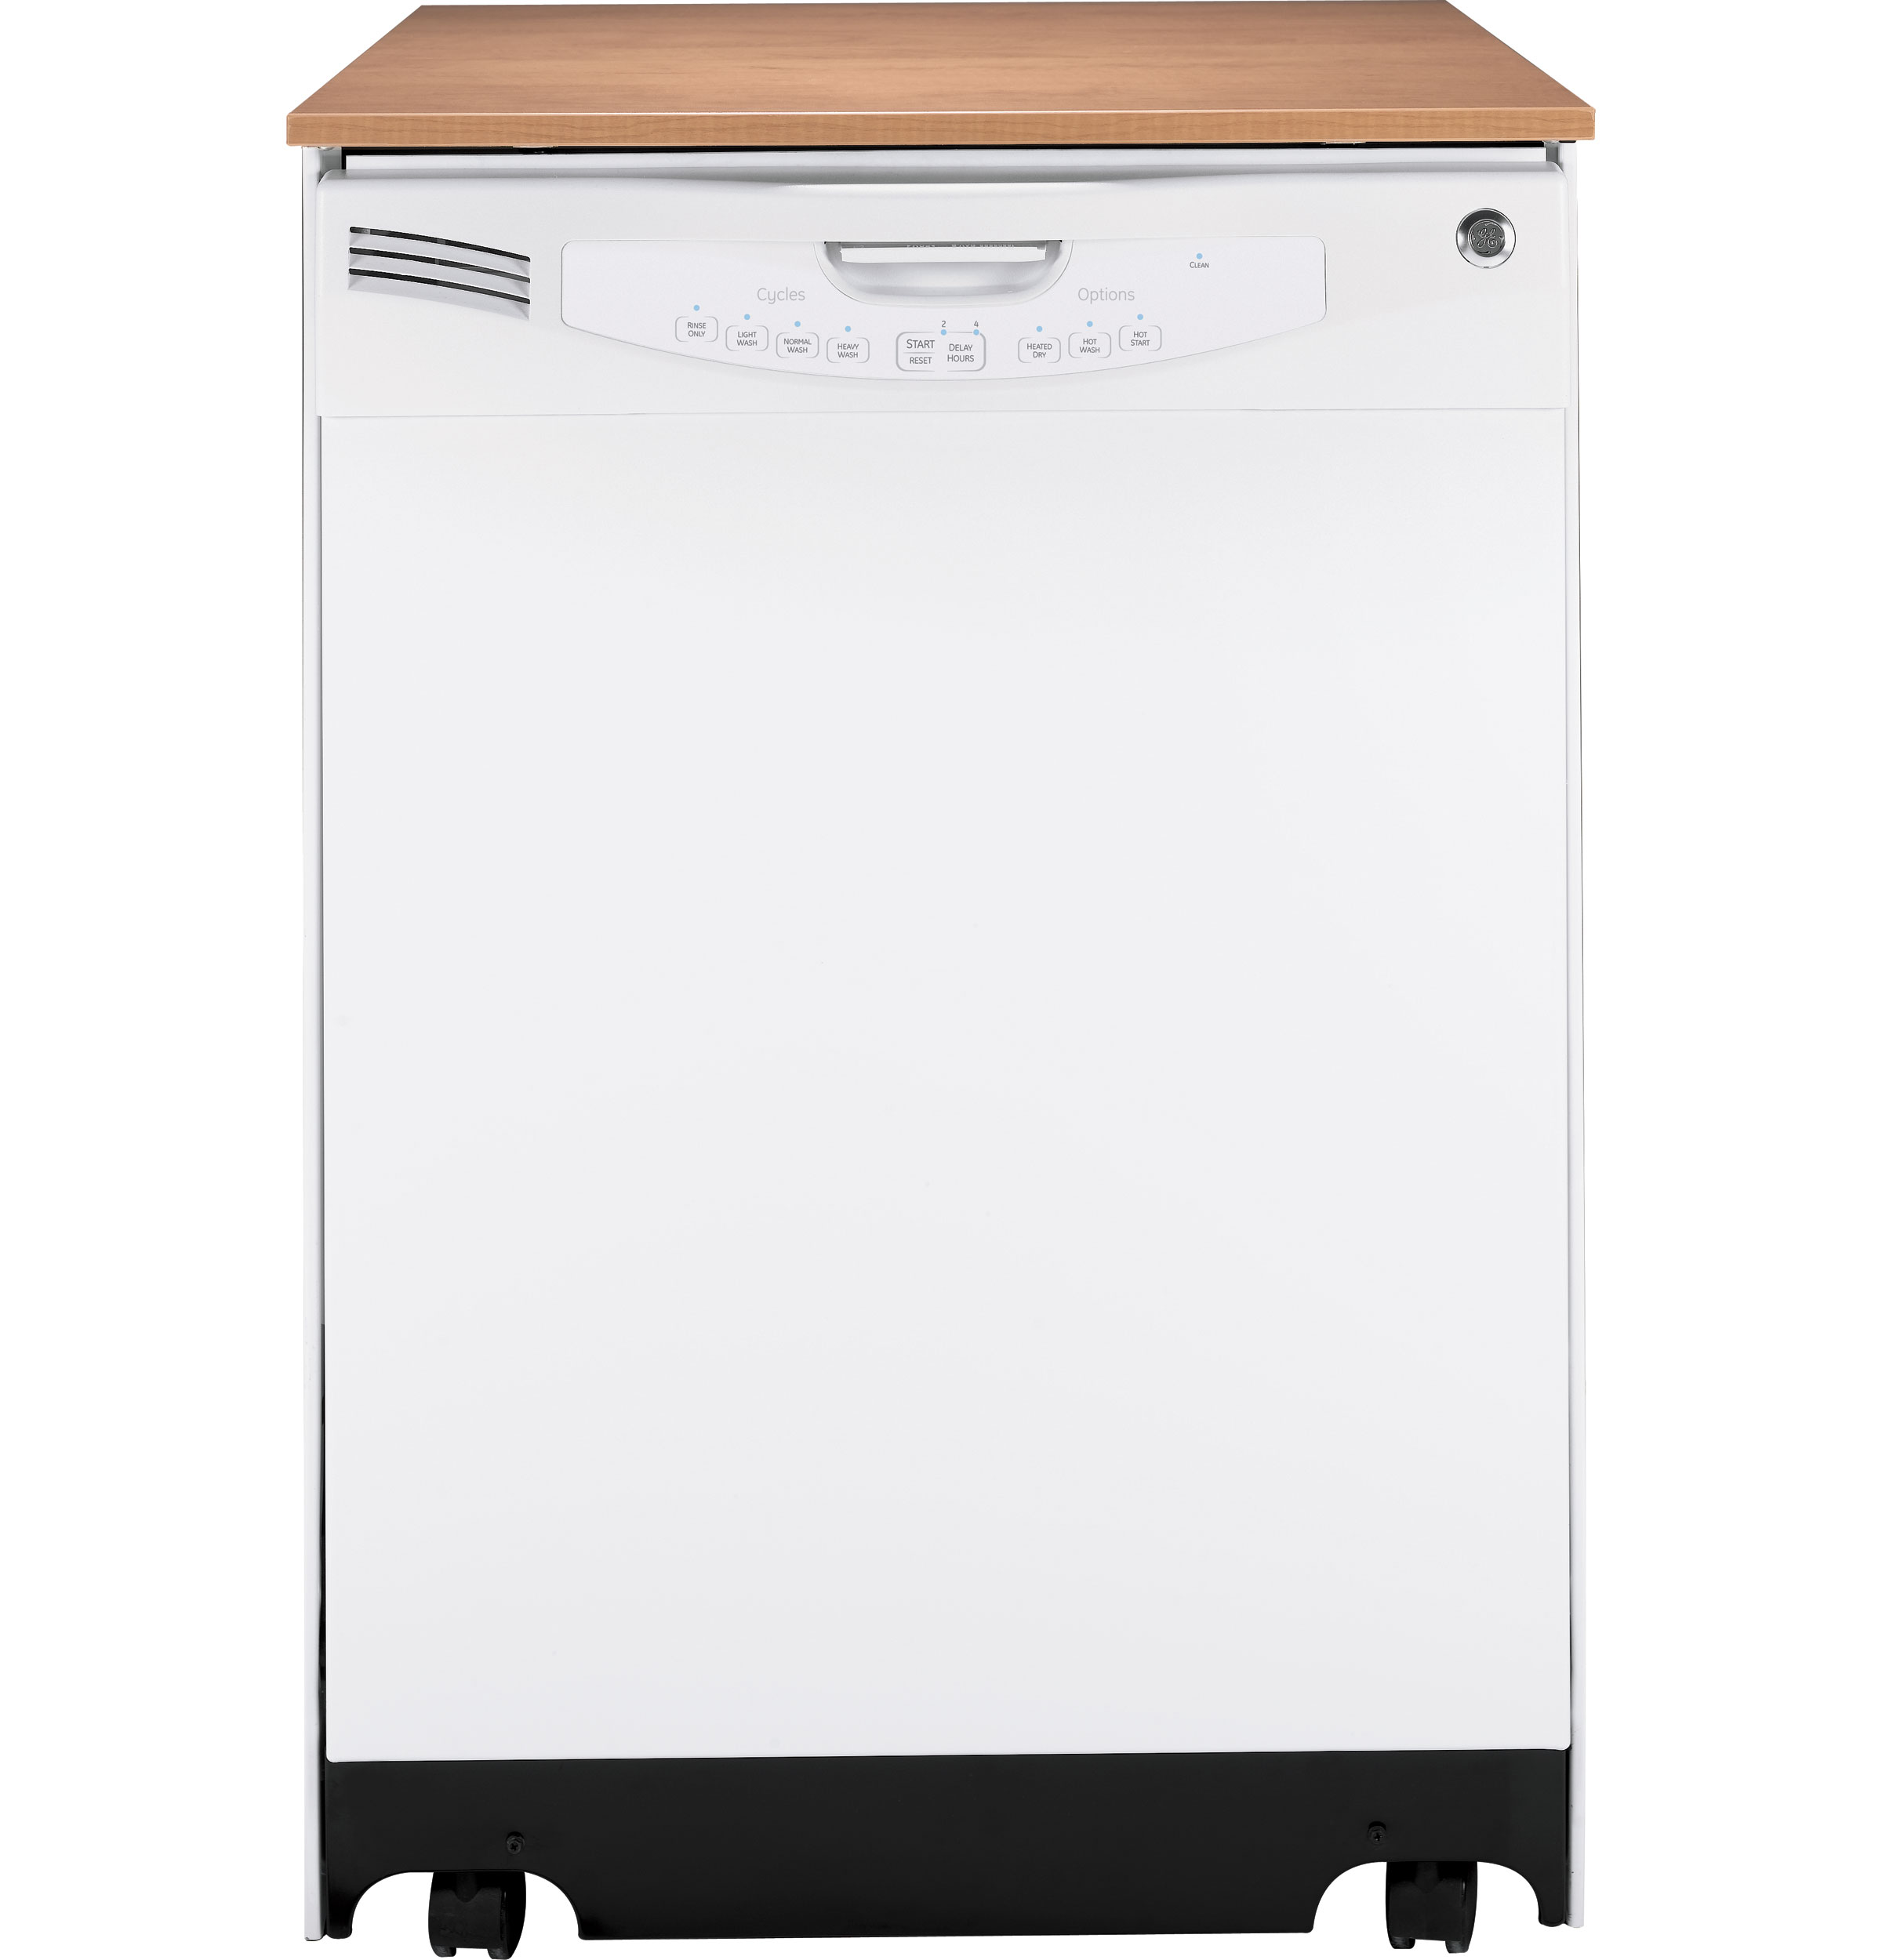 wid kenmore portable countertop dishwasher p white reviews hei qlt prod